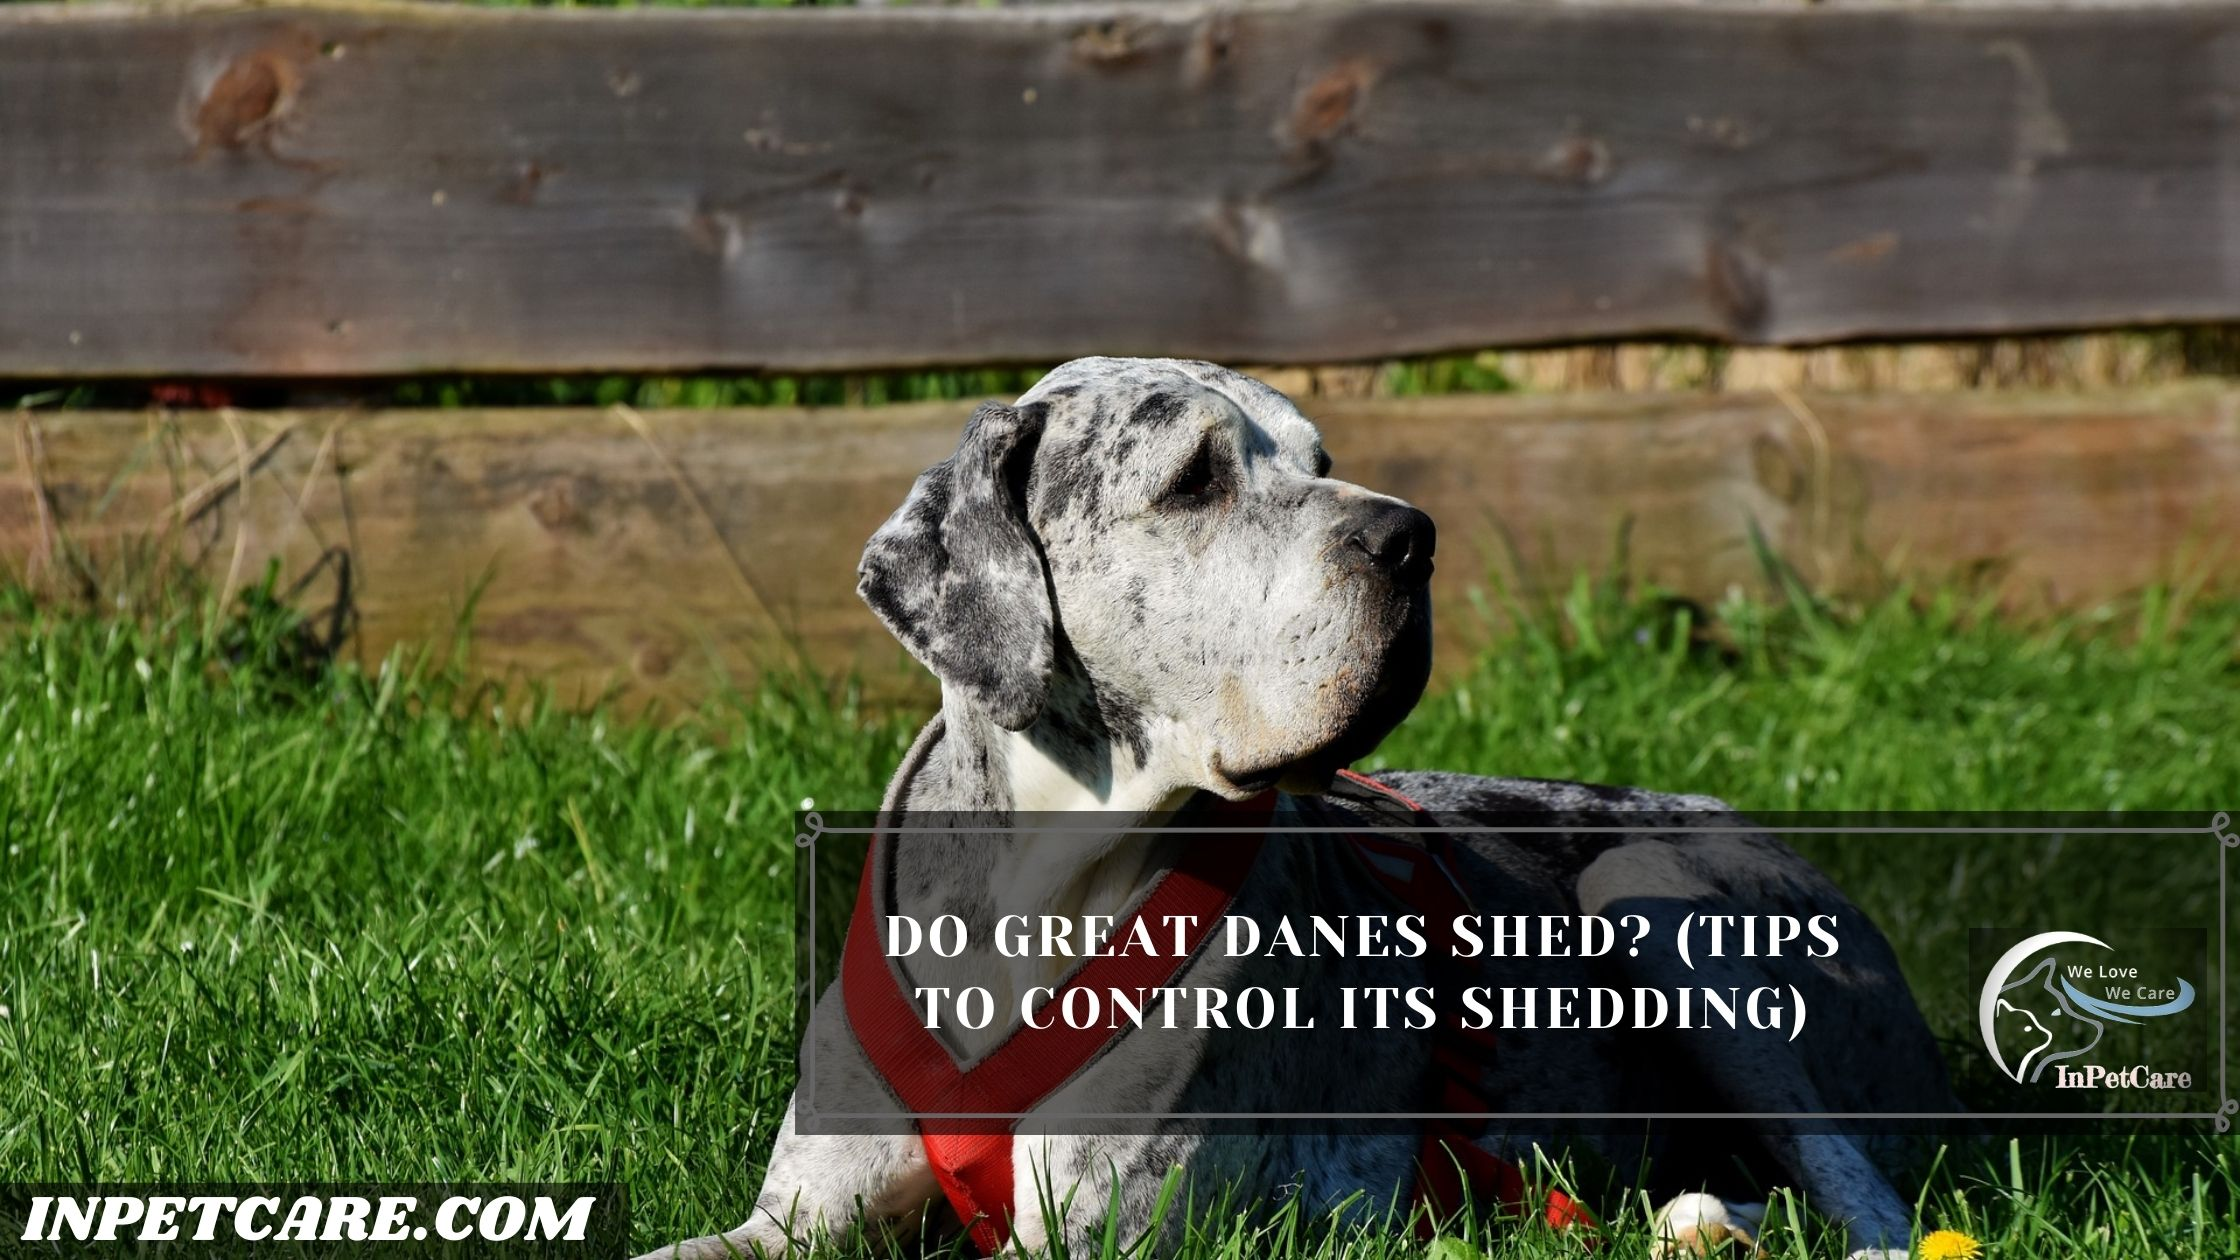 Do Great Danes Shed?